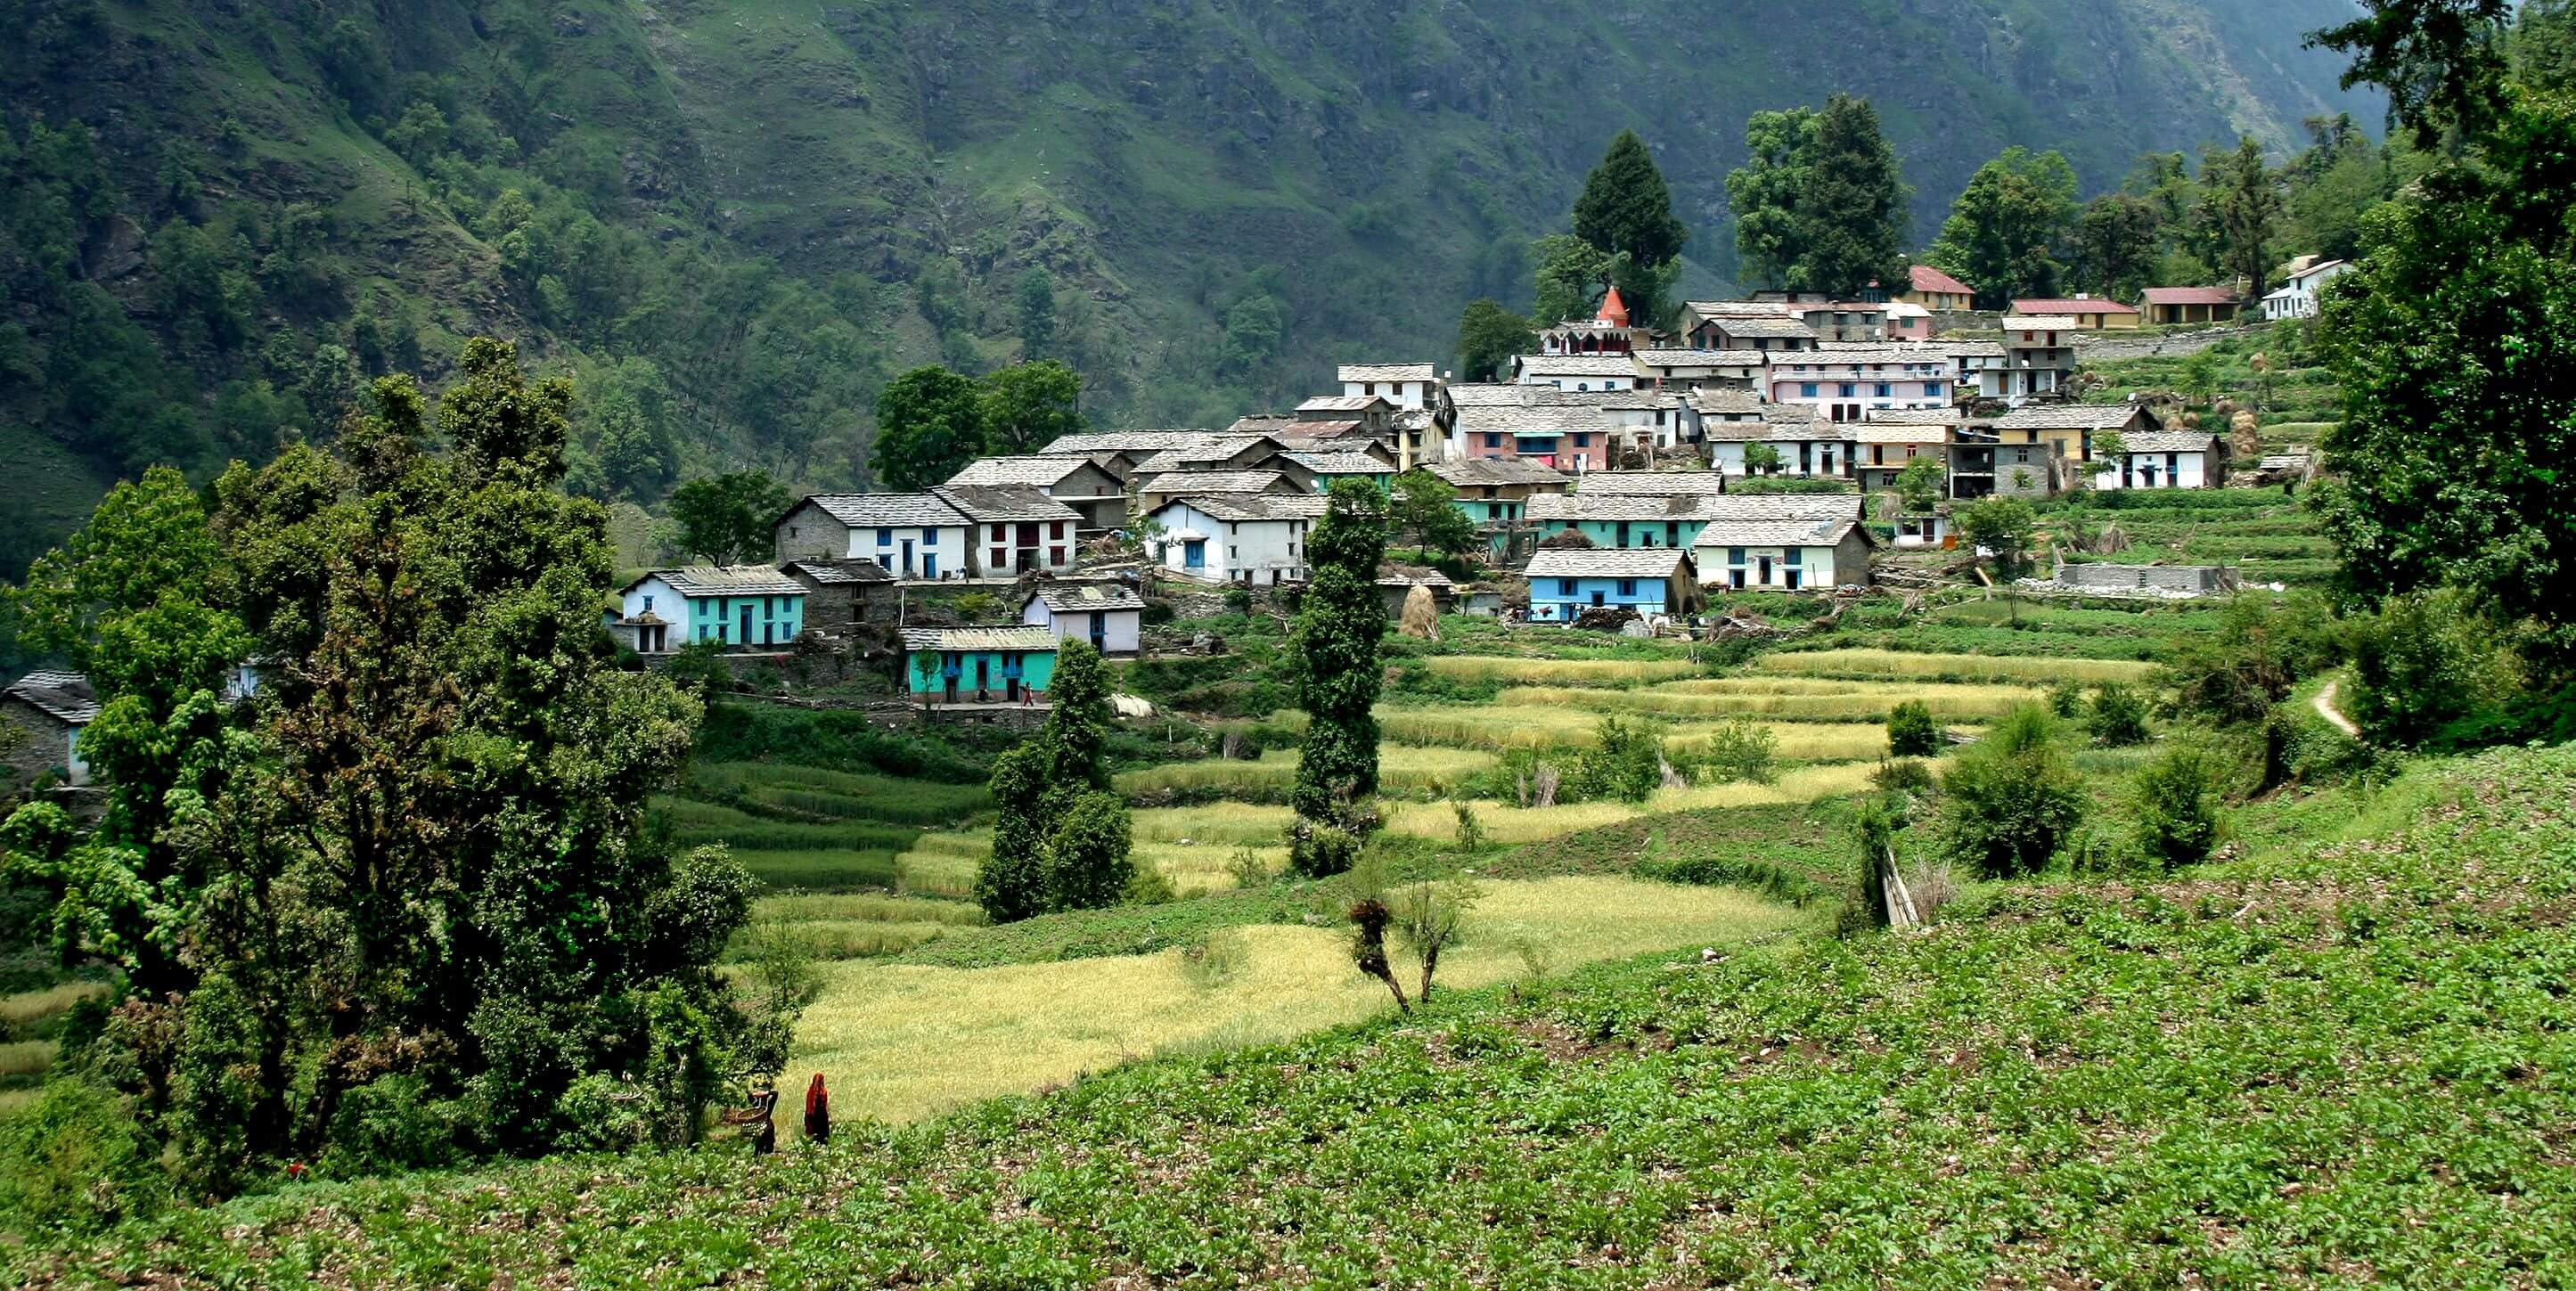 the gorgeous Khati Village amid mountains